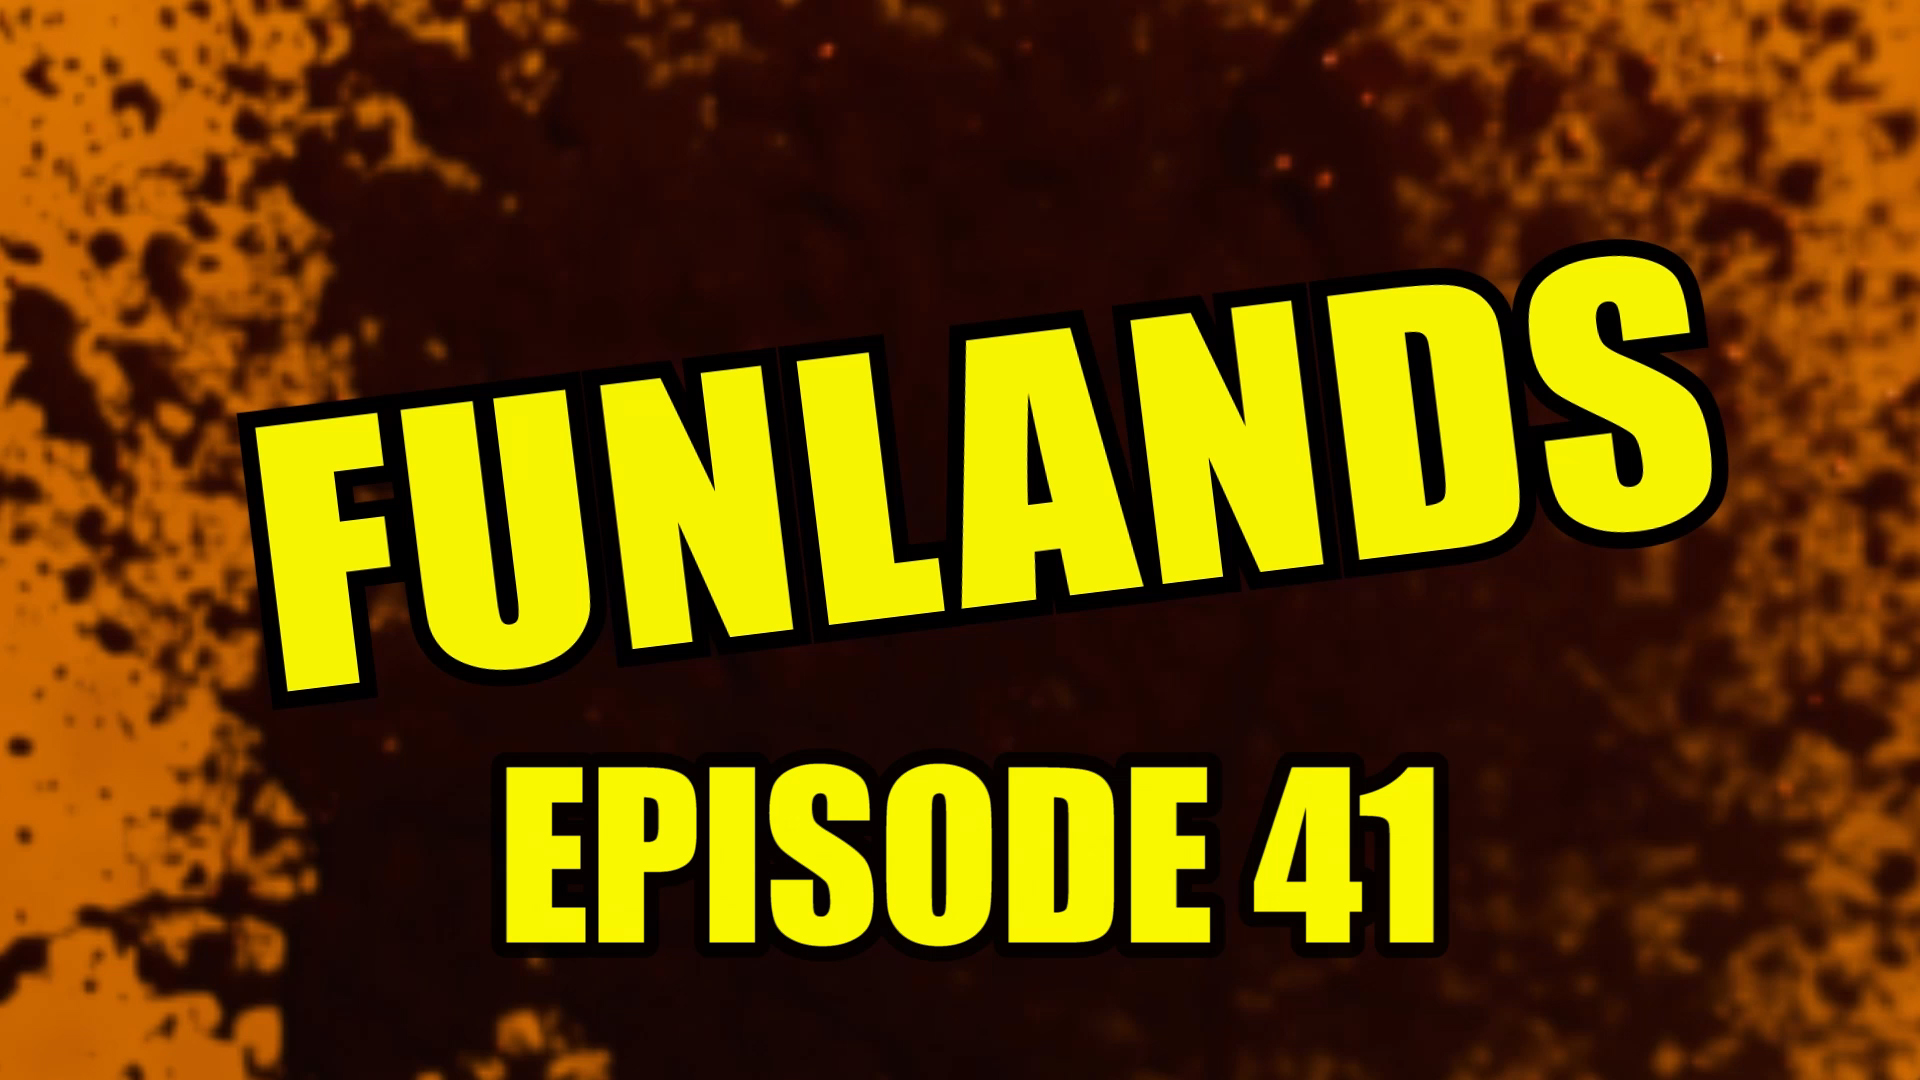 Funlands Episode 41.jpg